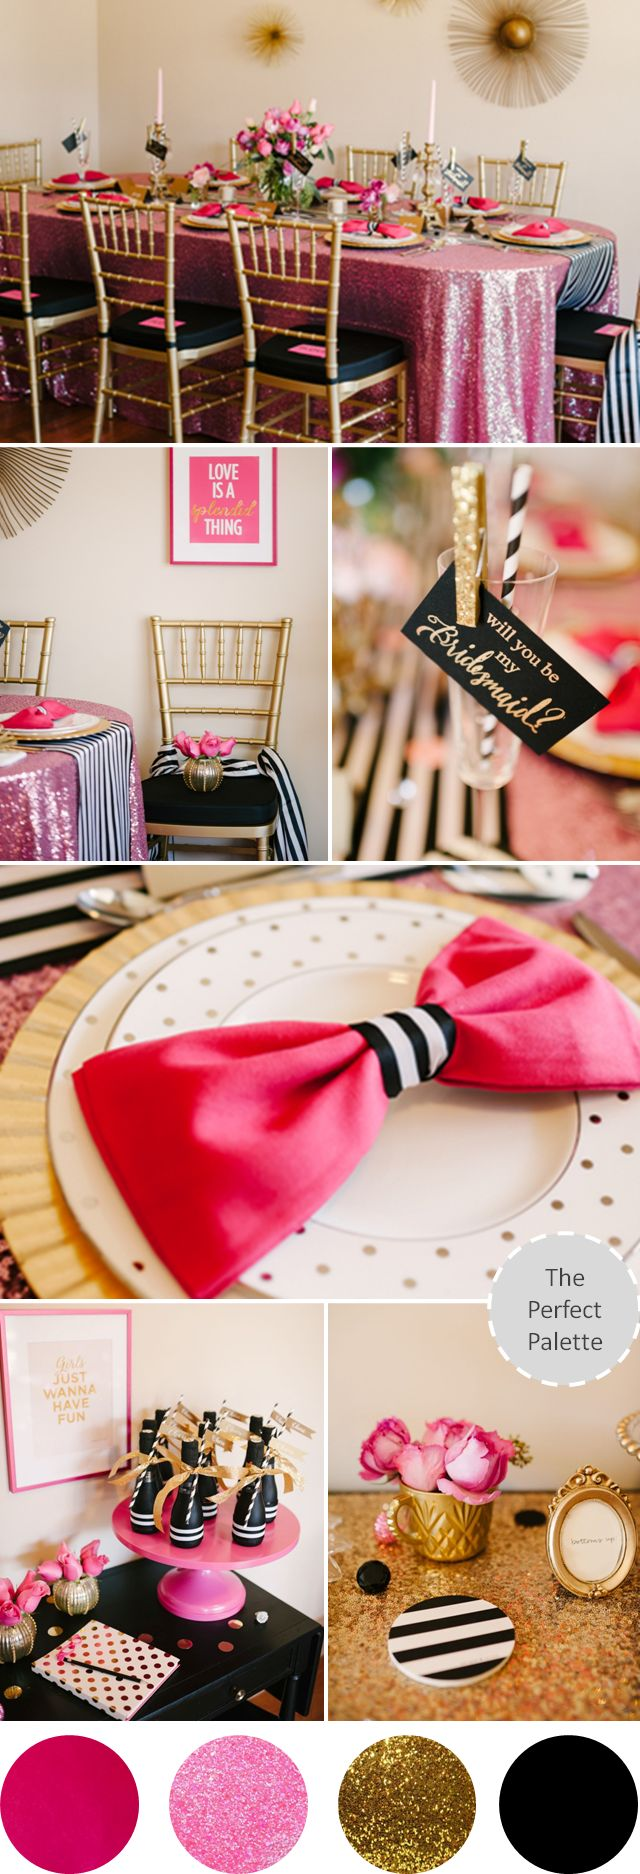 Styled shoot for Kate Spade by The Perfect Palette. photos by Lauren Rae Photography http://www.theperfectpalette.com/2014/01/a-chic-and-swanky-kate-spade-inspired.html